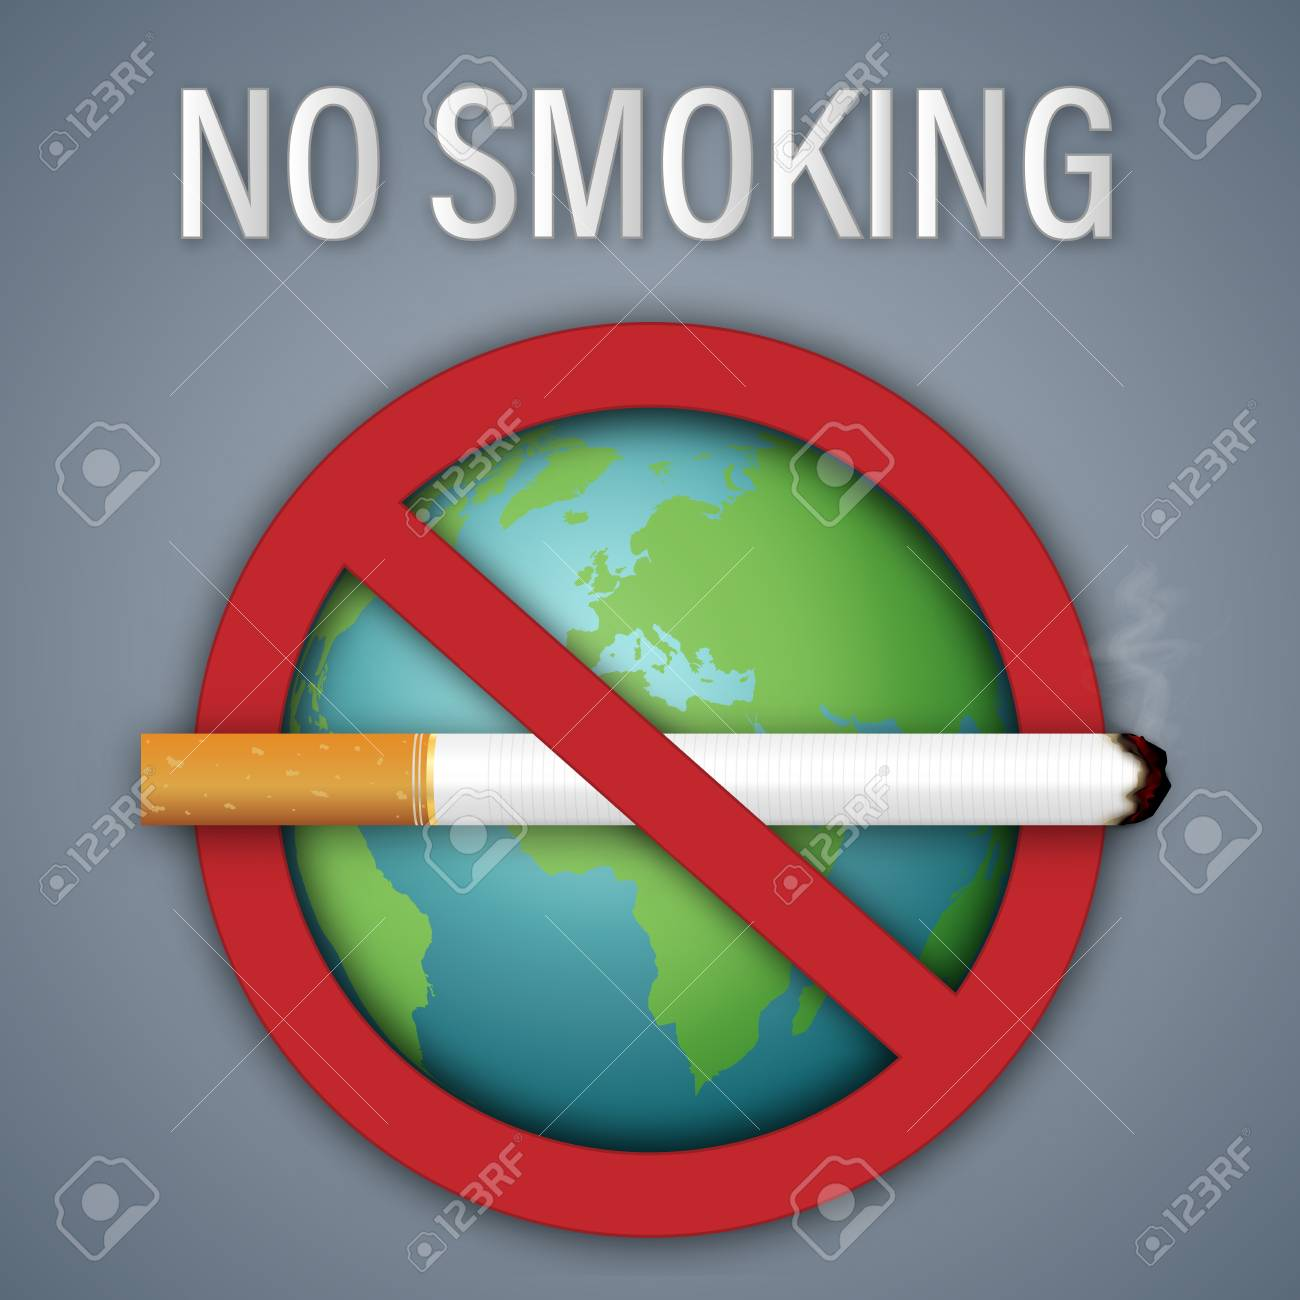 No smoking sign world day on the green earth as healthy, Social issues and paper art concept. vector illustration - 104465629